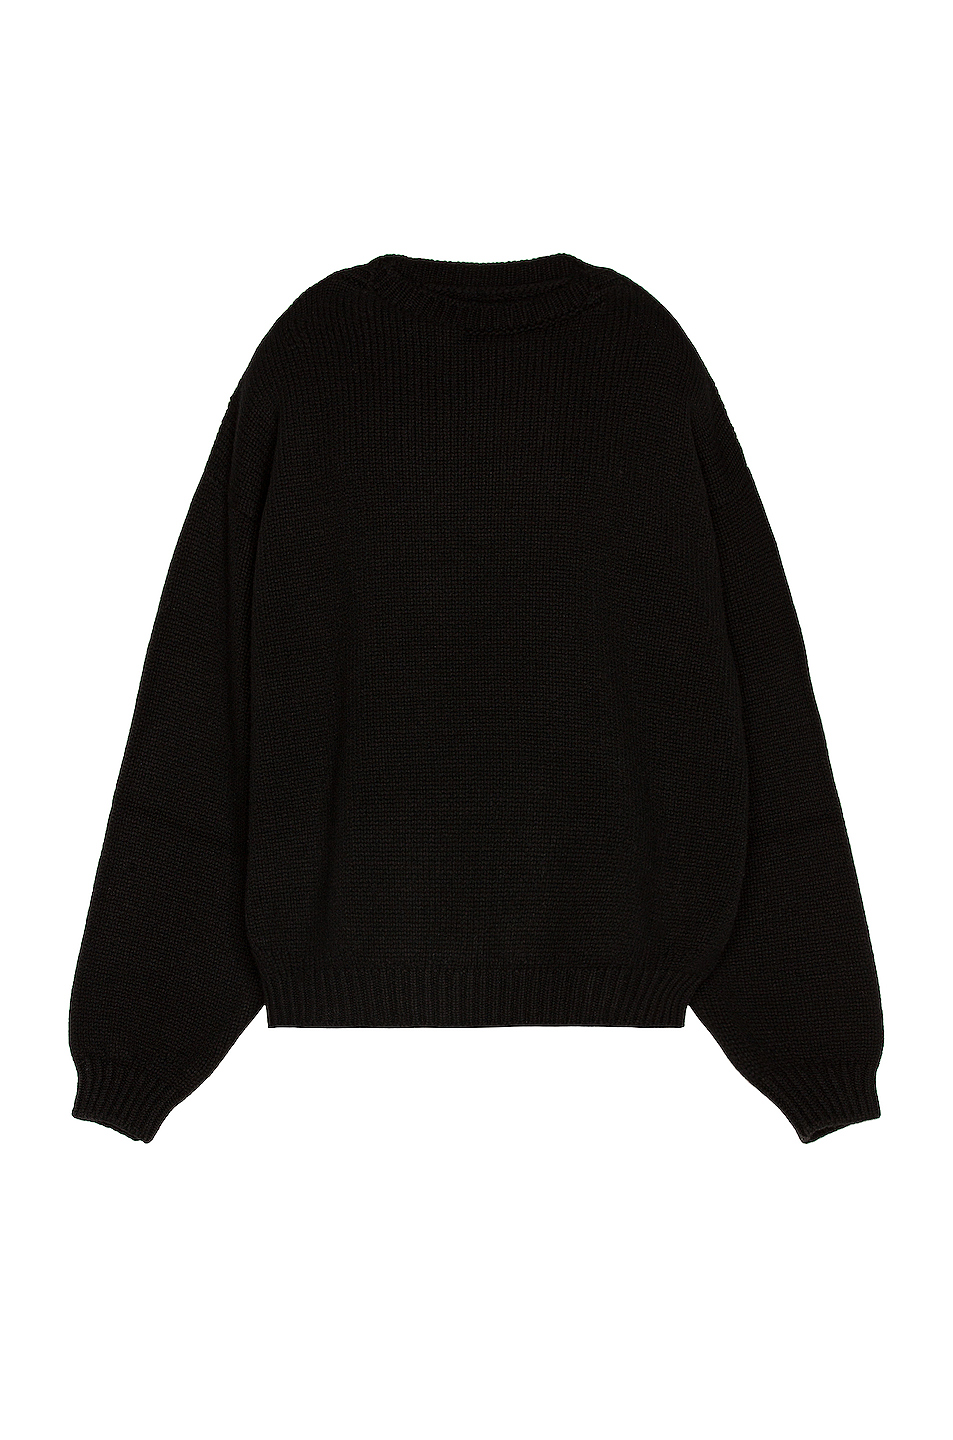 Fear of God Overlapped Sweater